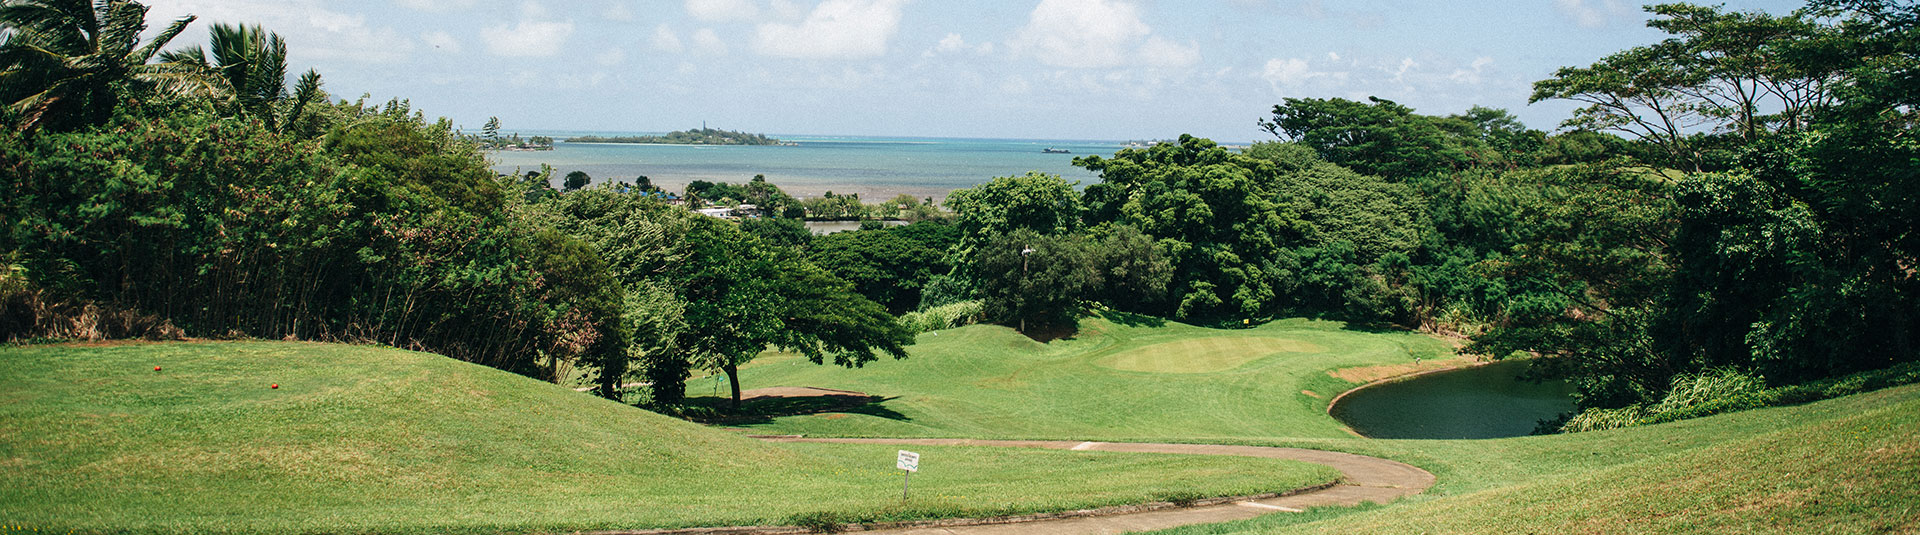 Kaneohe Bay is seen as a backdrop to one of the holes at Bay View Golf Course